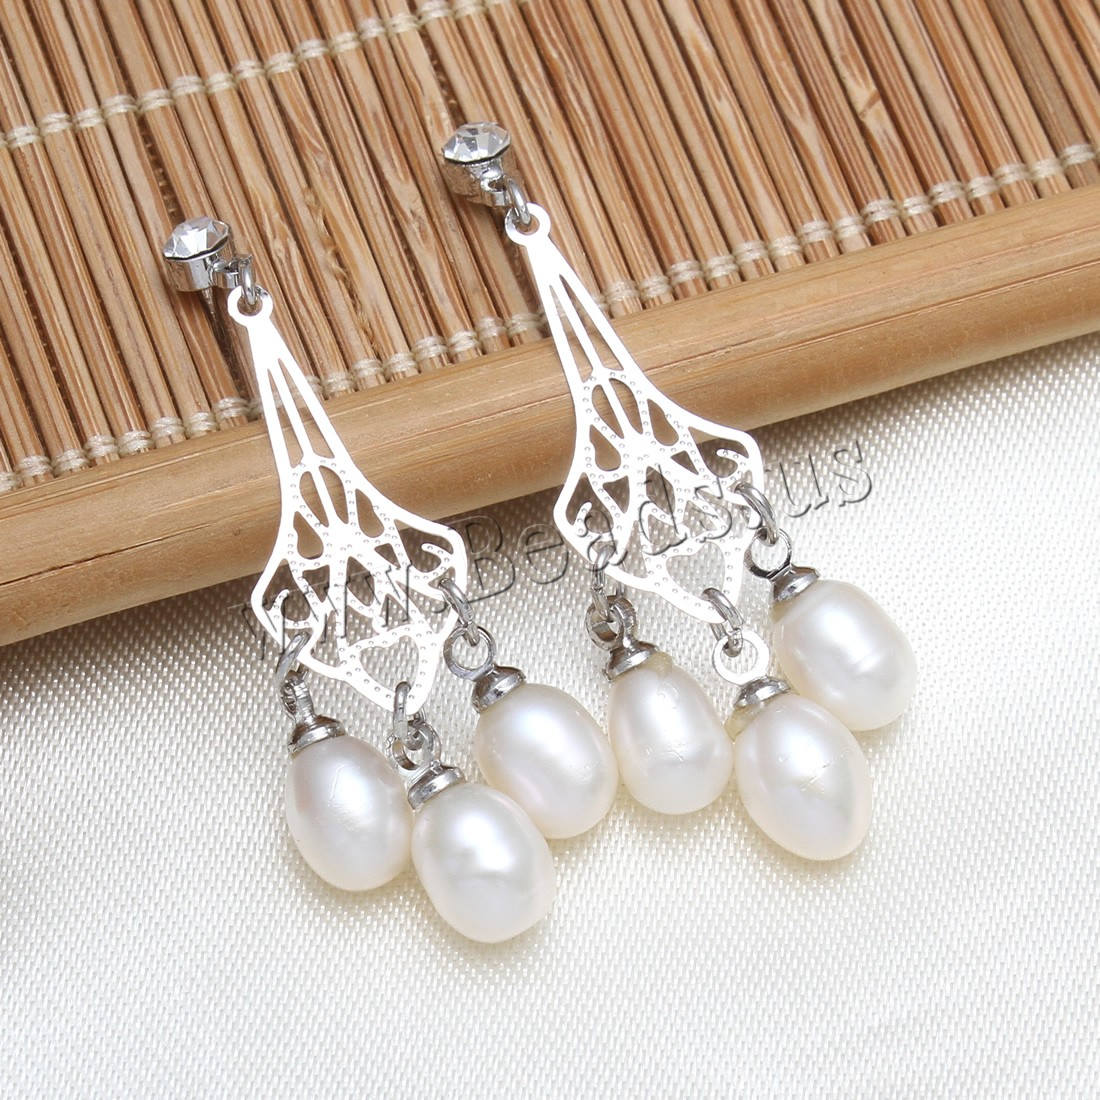 Buy Freshwater Pearl Earrings Rhinestone brass post pin platinum color plated white 6-7mm 39-42mm Sold Pair